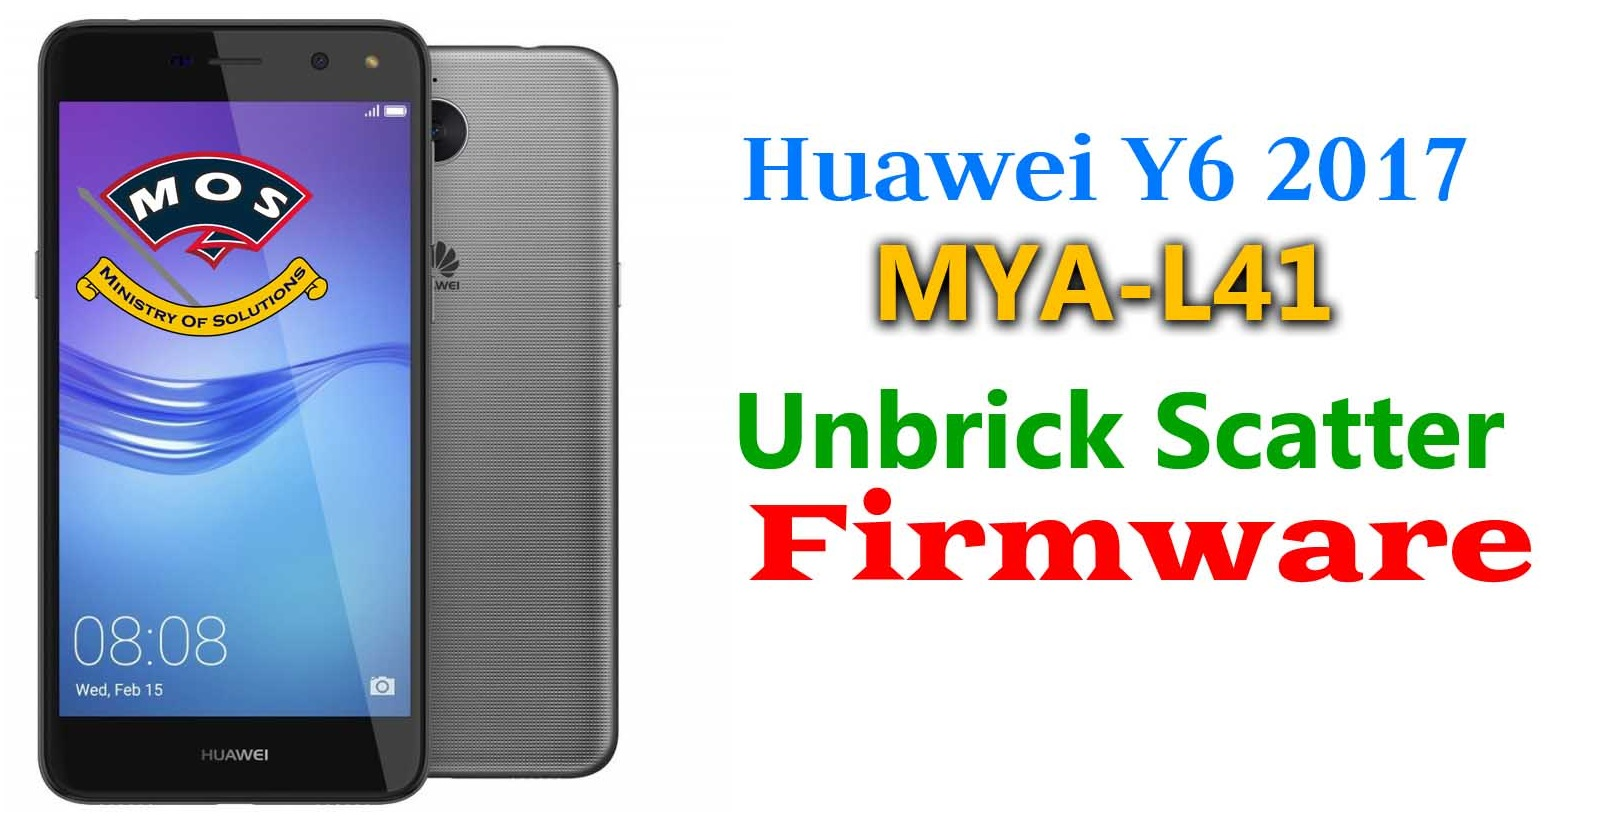 Huawei Y6 2017 MYA-L41 Unbrick Scatter Firmware B143 - Ministry Of